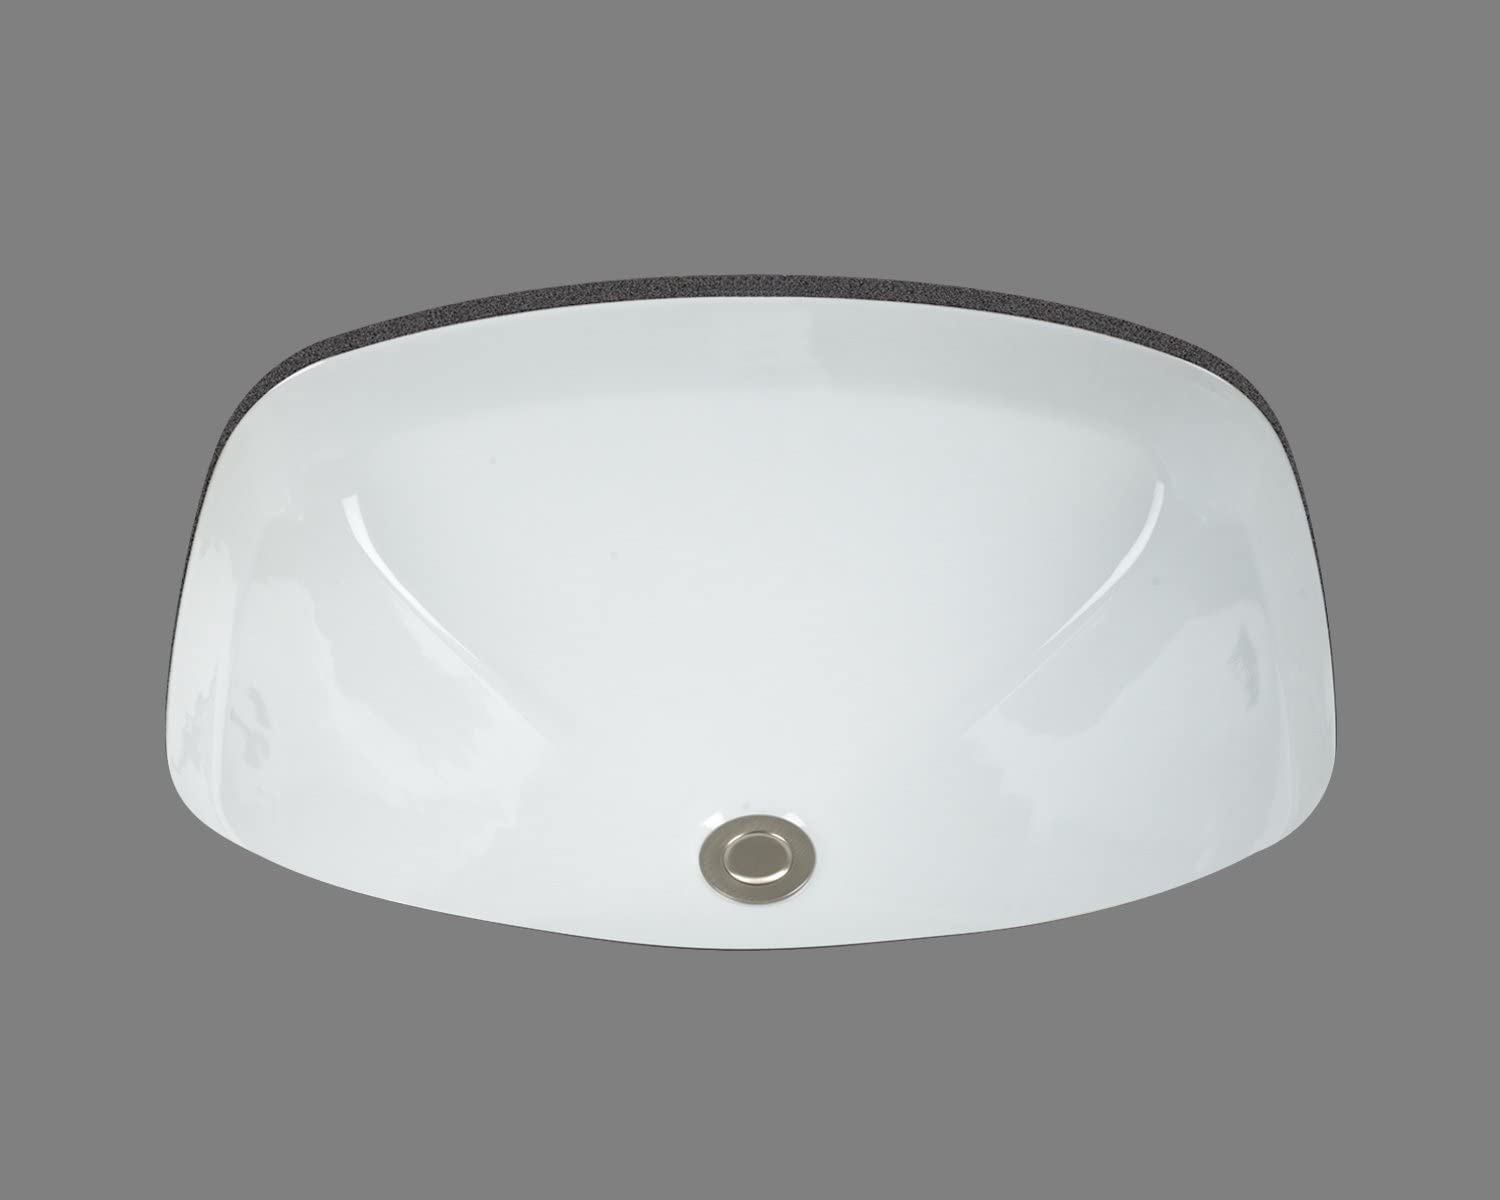 D Above Counter Square Vessel in White Color for Wall Mount Faucet American Imaginations AI-888-14030 W x 16.5-in